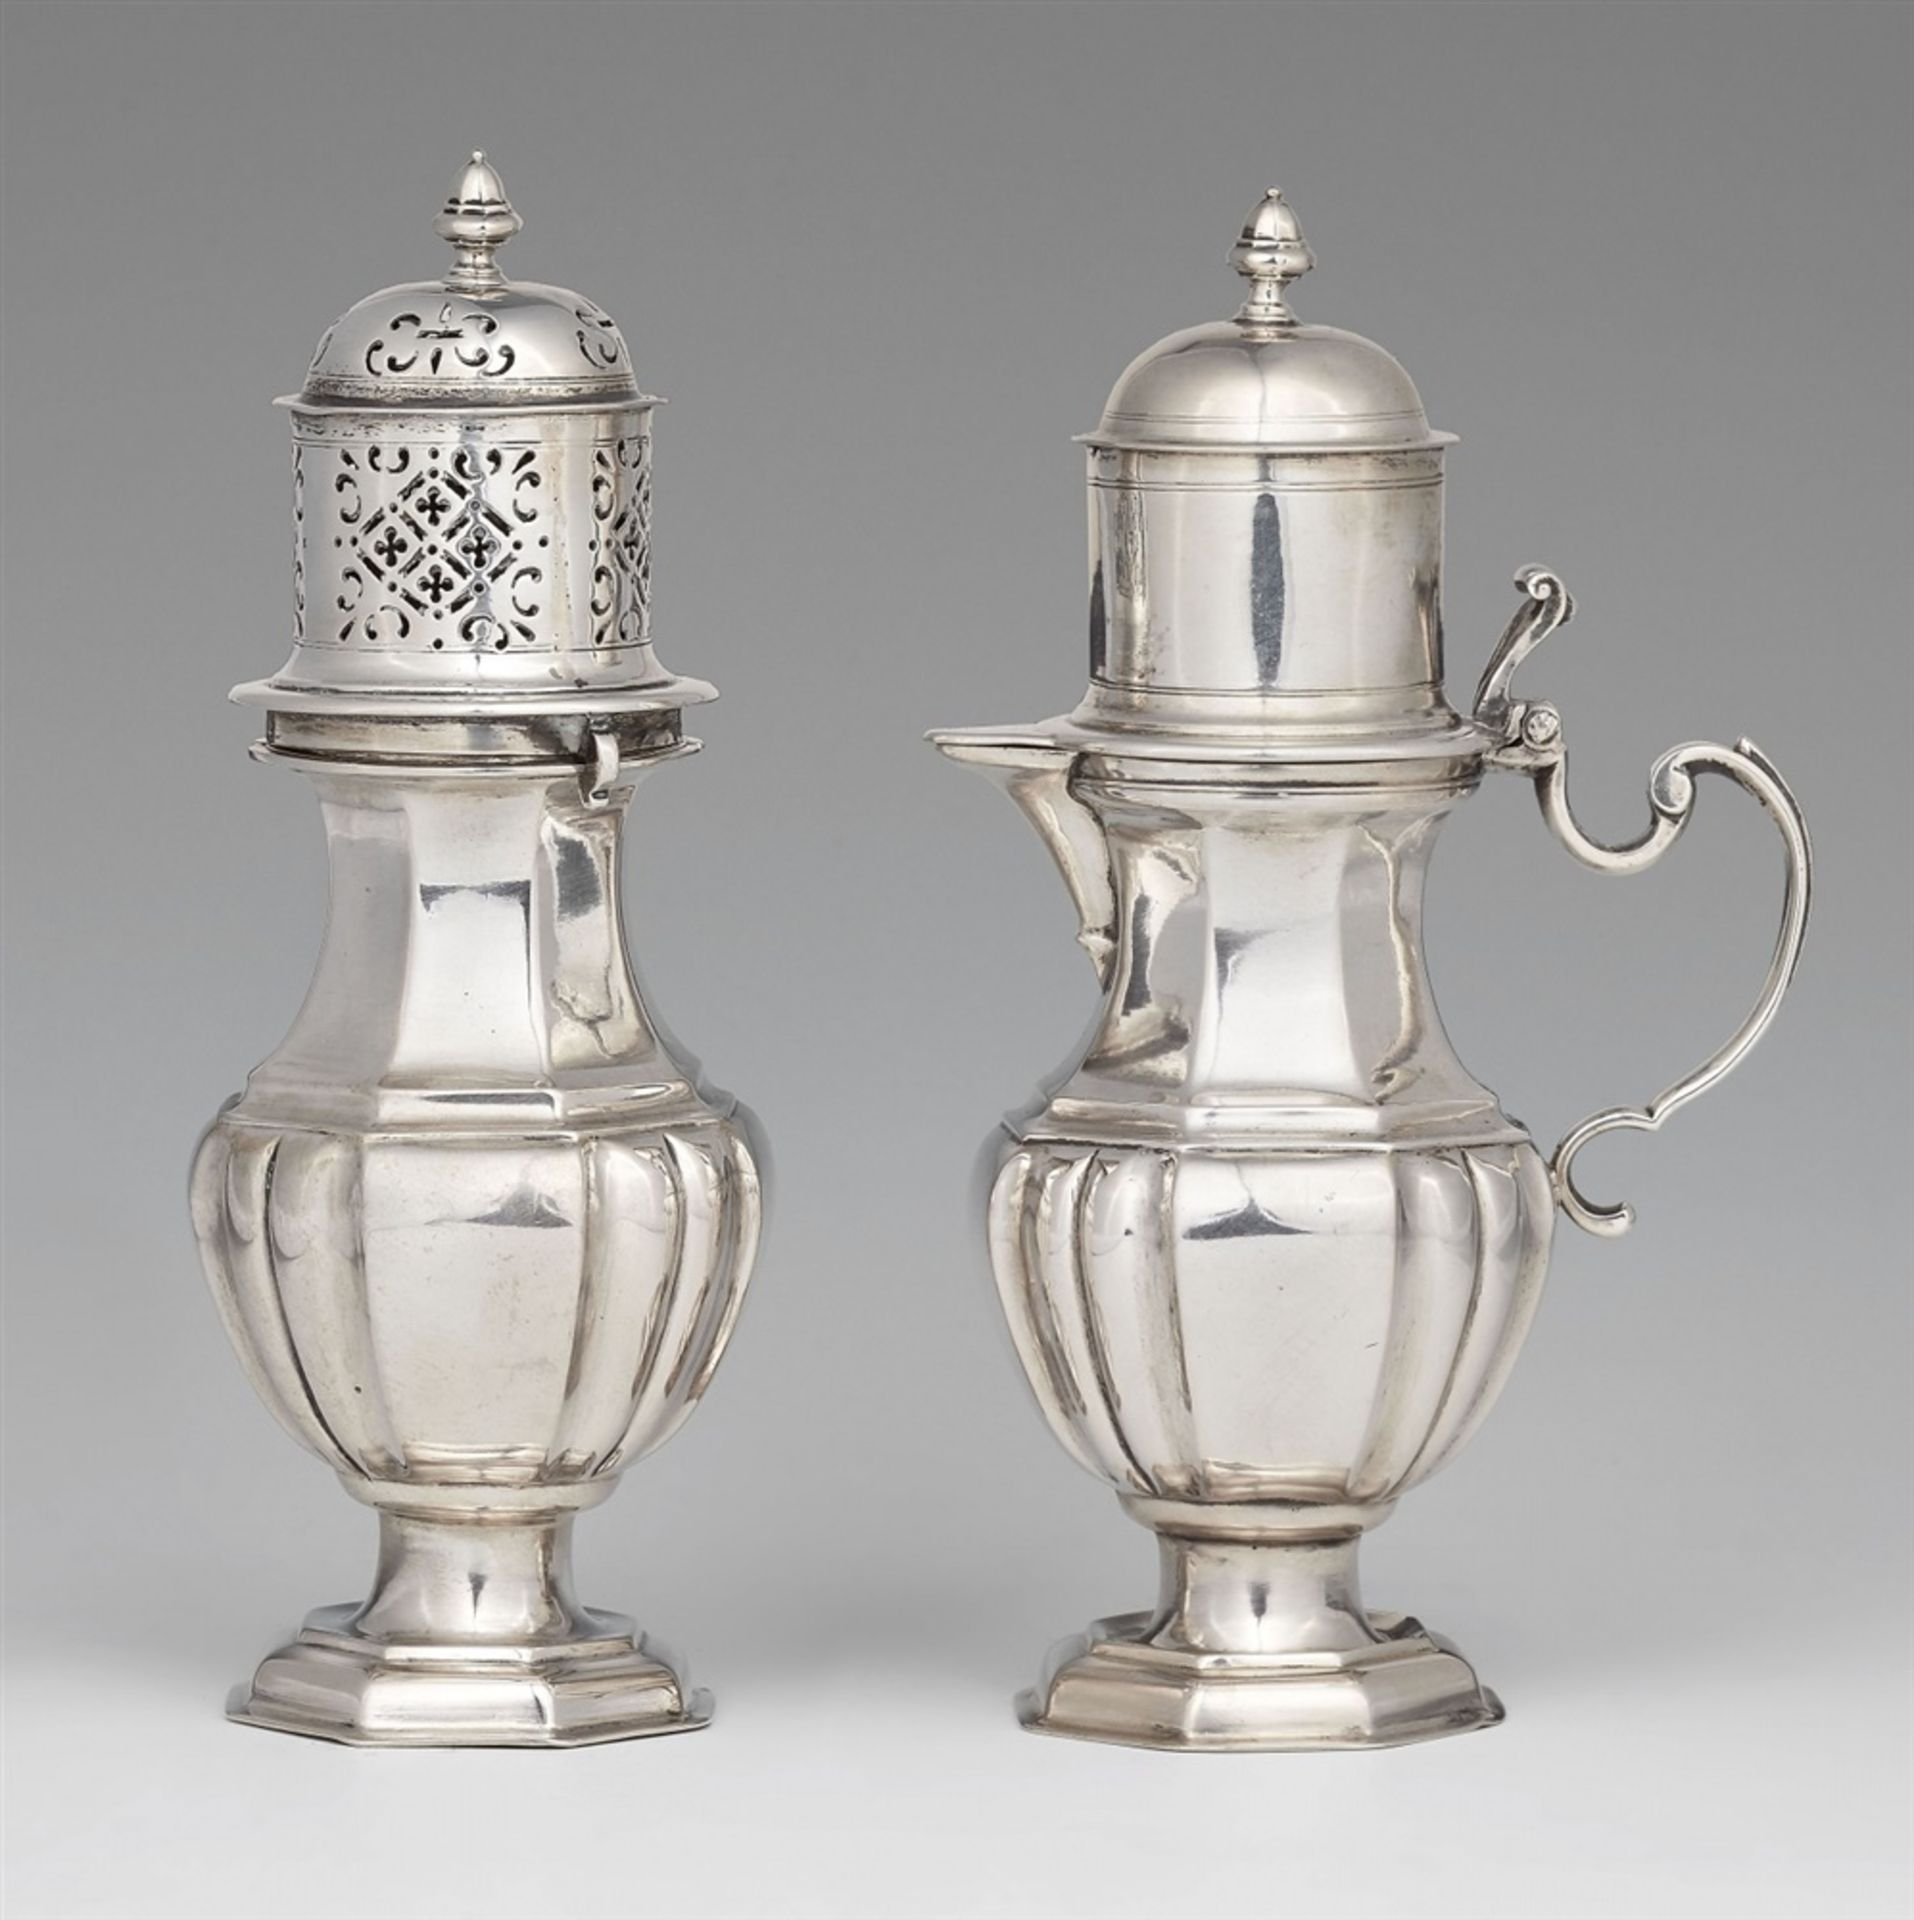 Los 727 - An Augsburg silver cream garnitureSilver; inside with remnants of gilding. Silver tea set with